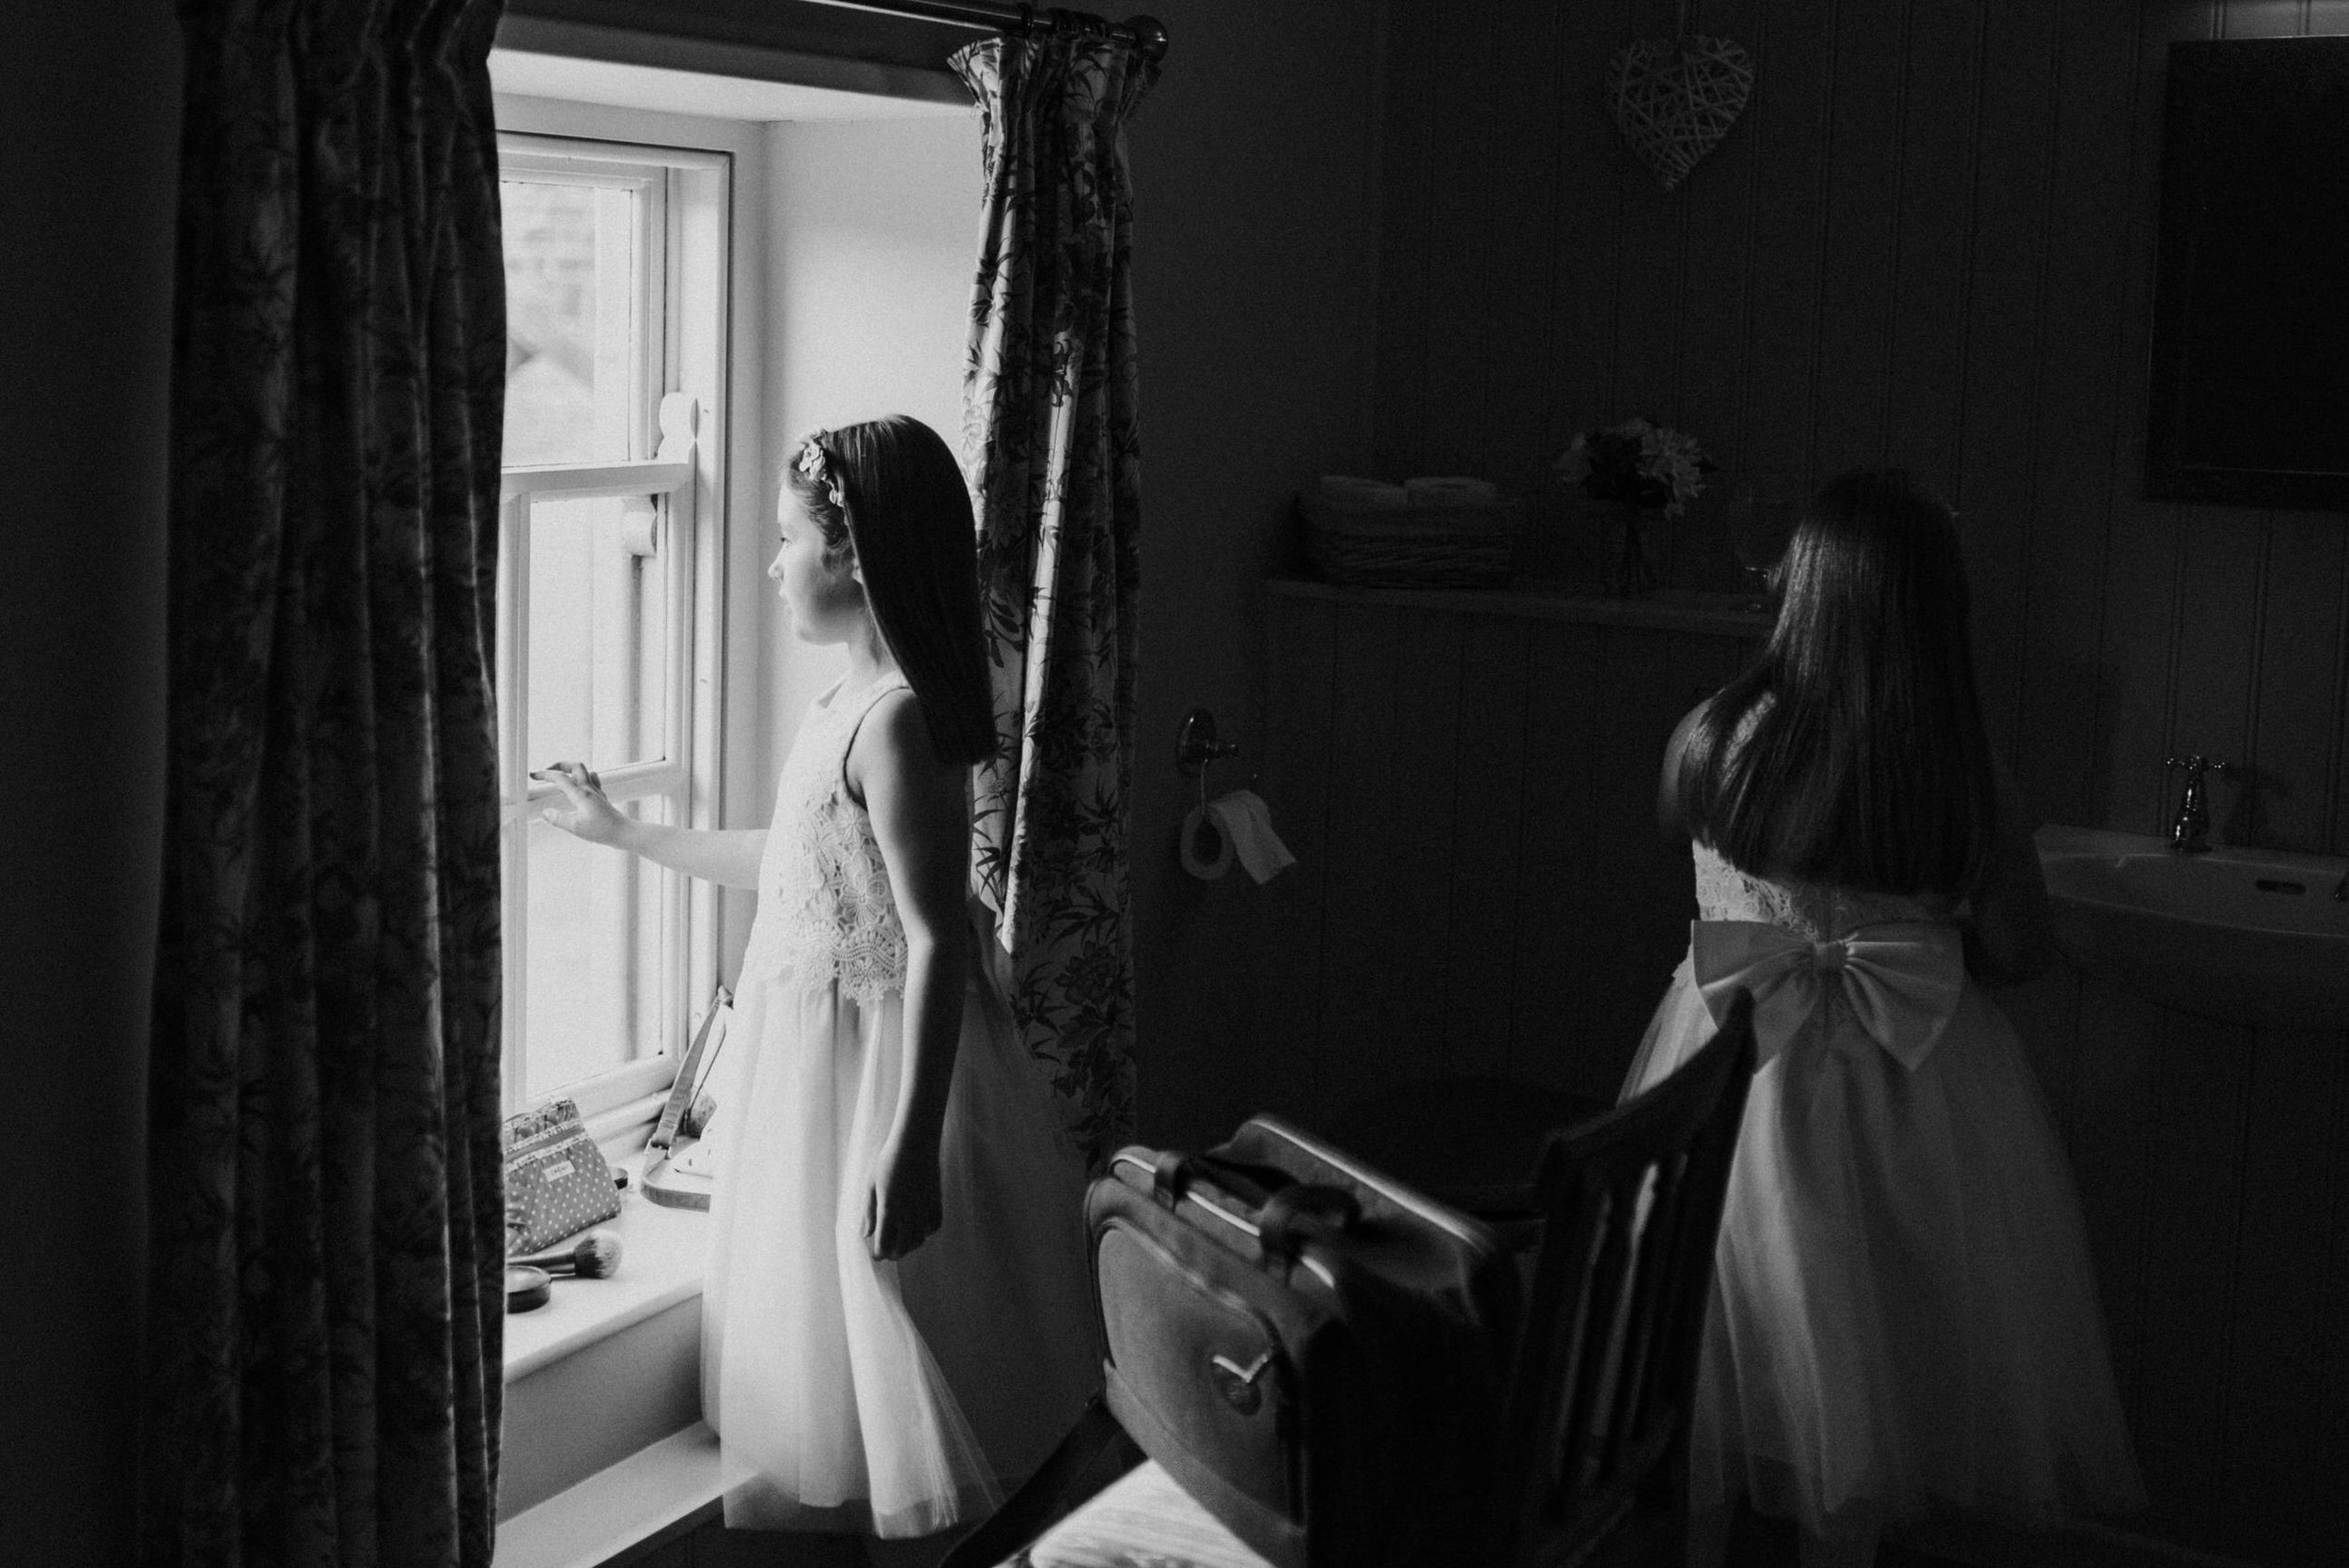 lissanoure castle wedding, northern ireland wedding photographer, romantic northern irish wedding venue, castle wedding ireland, natural wedding photography ni (41).jpg